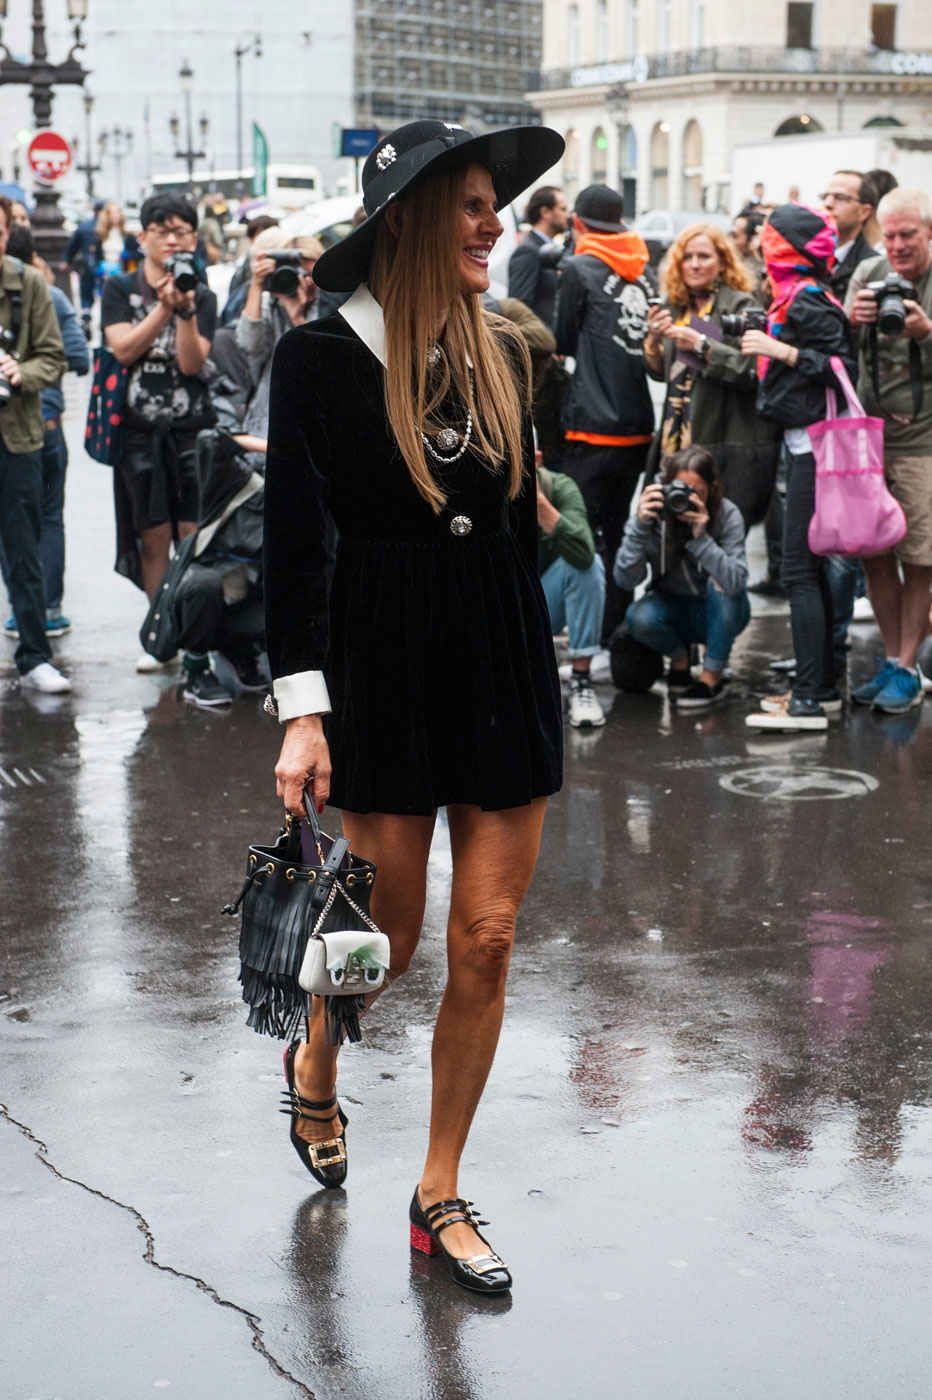 The Best Street Style From Paris Fashion Week - Fashionista